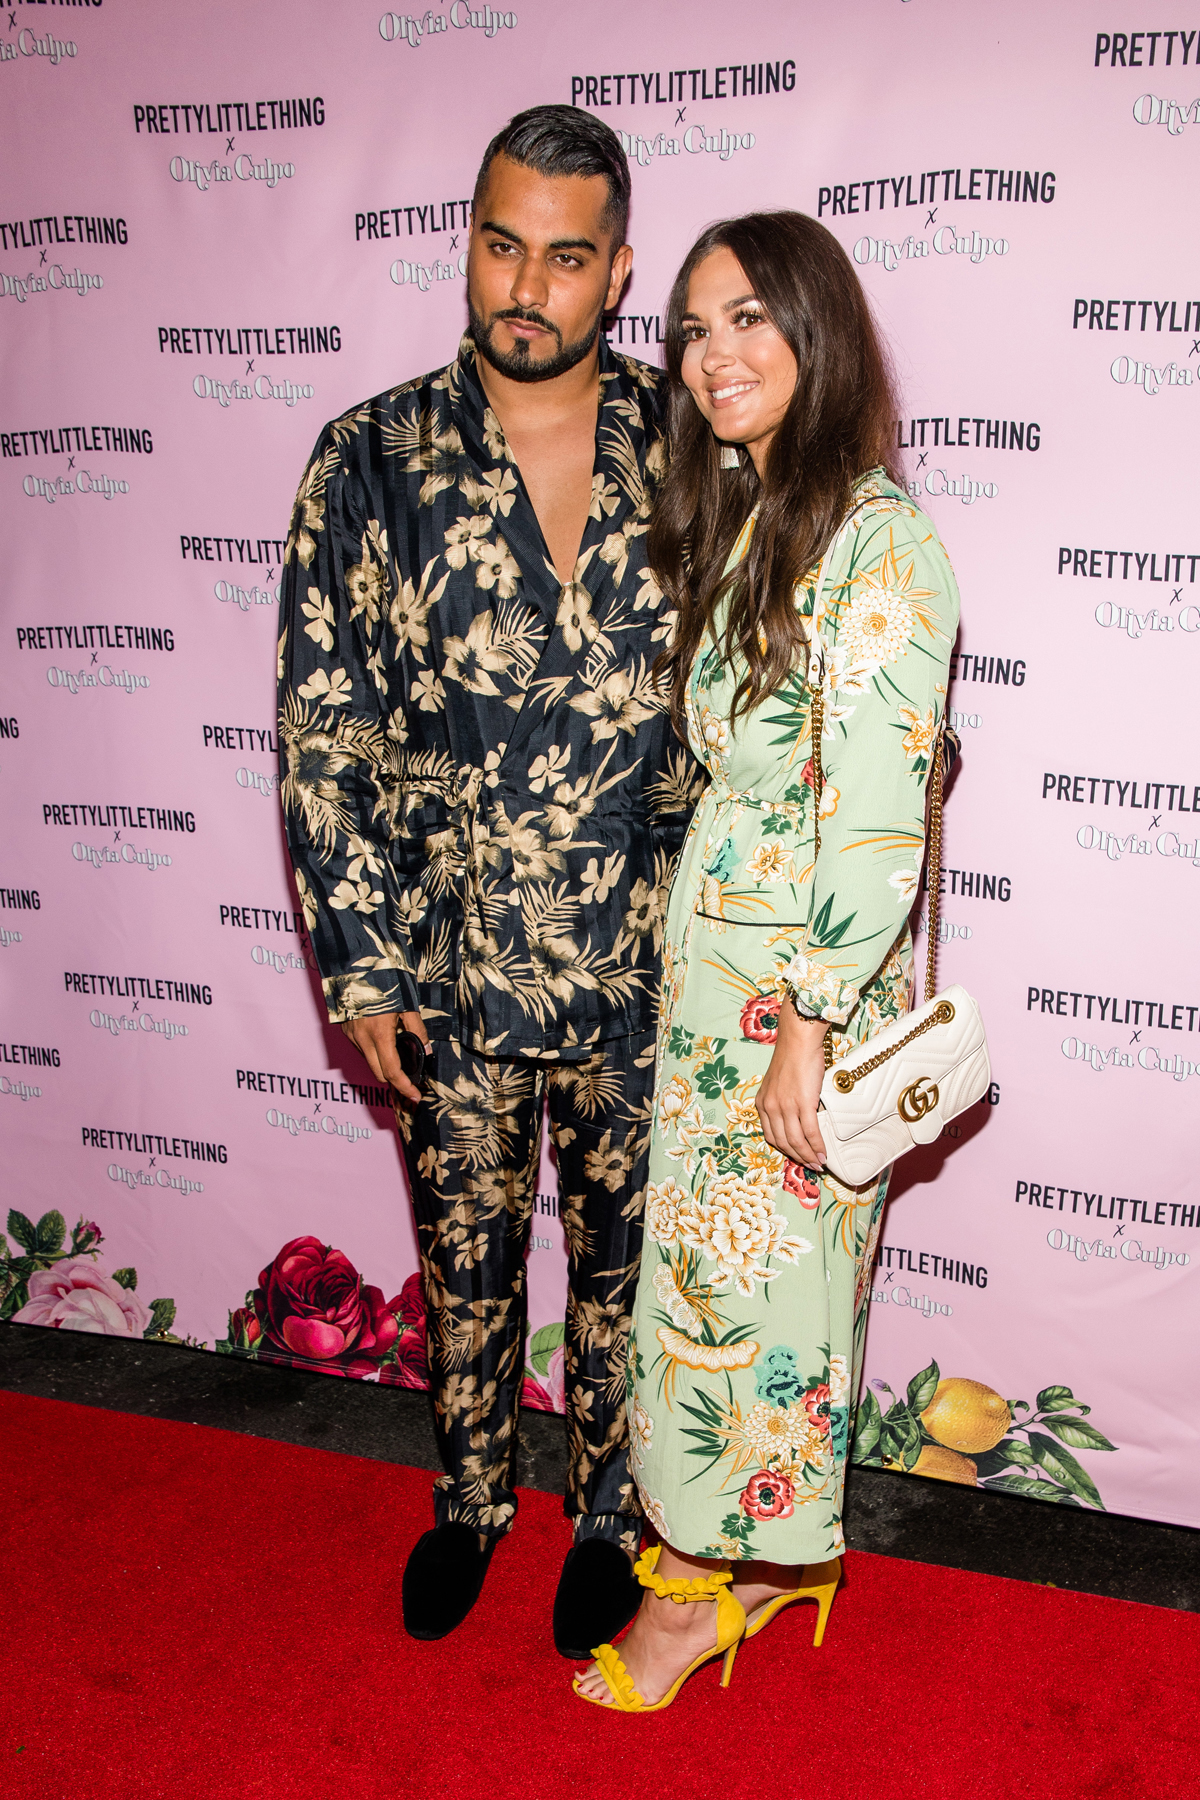 PrettyLittleThing PLT X Olivia Culpo Collection  Celebrity Launch Party Umar Kamani and Amy Radish.jpg